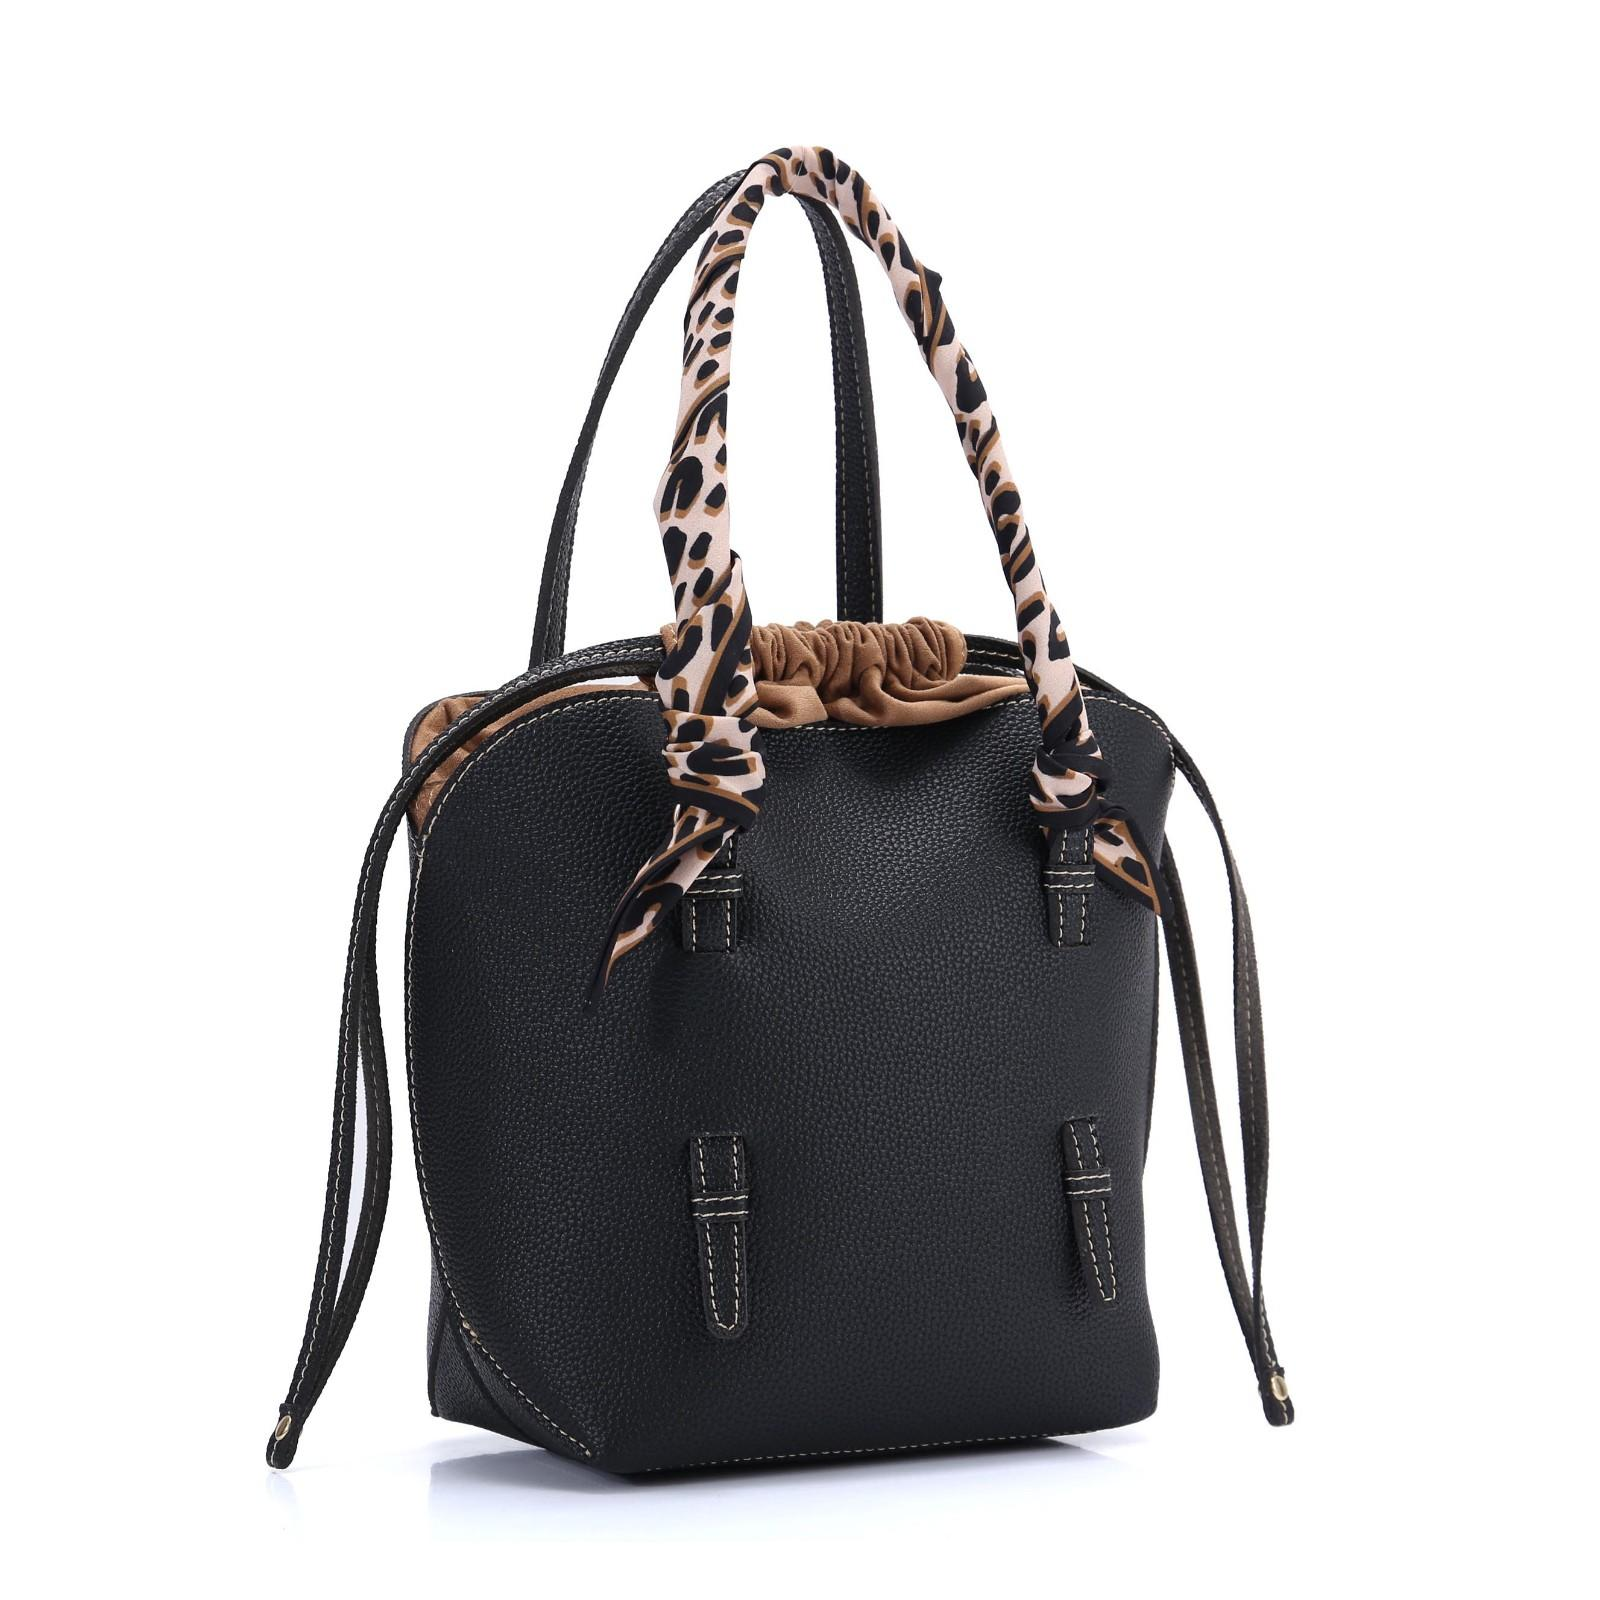 ANGEDANLIA elegant black leather purse for sale for work